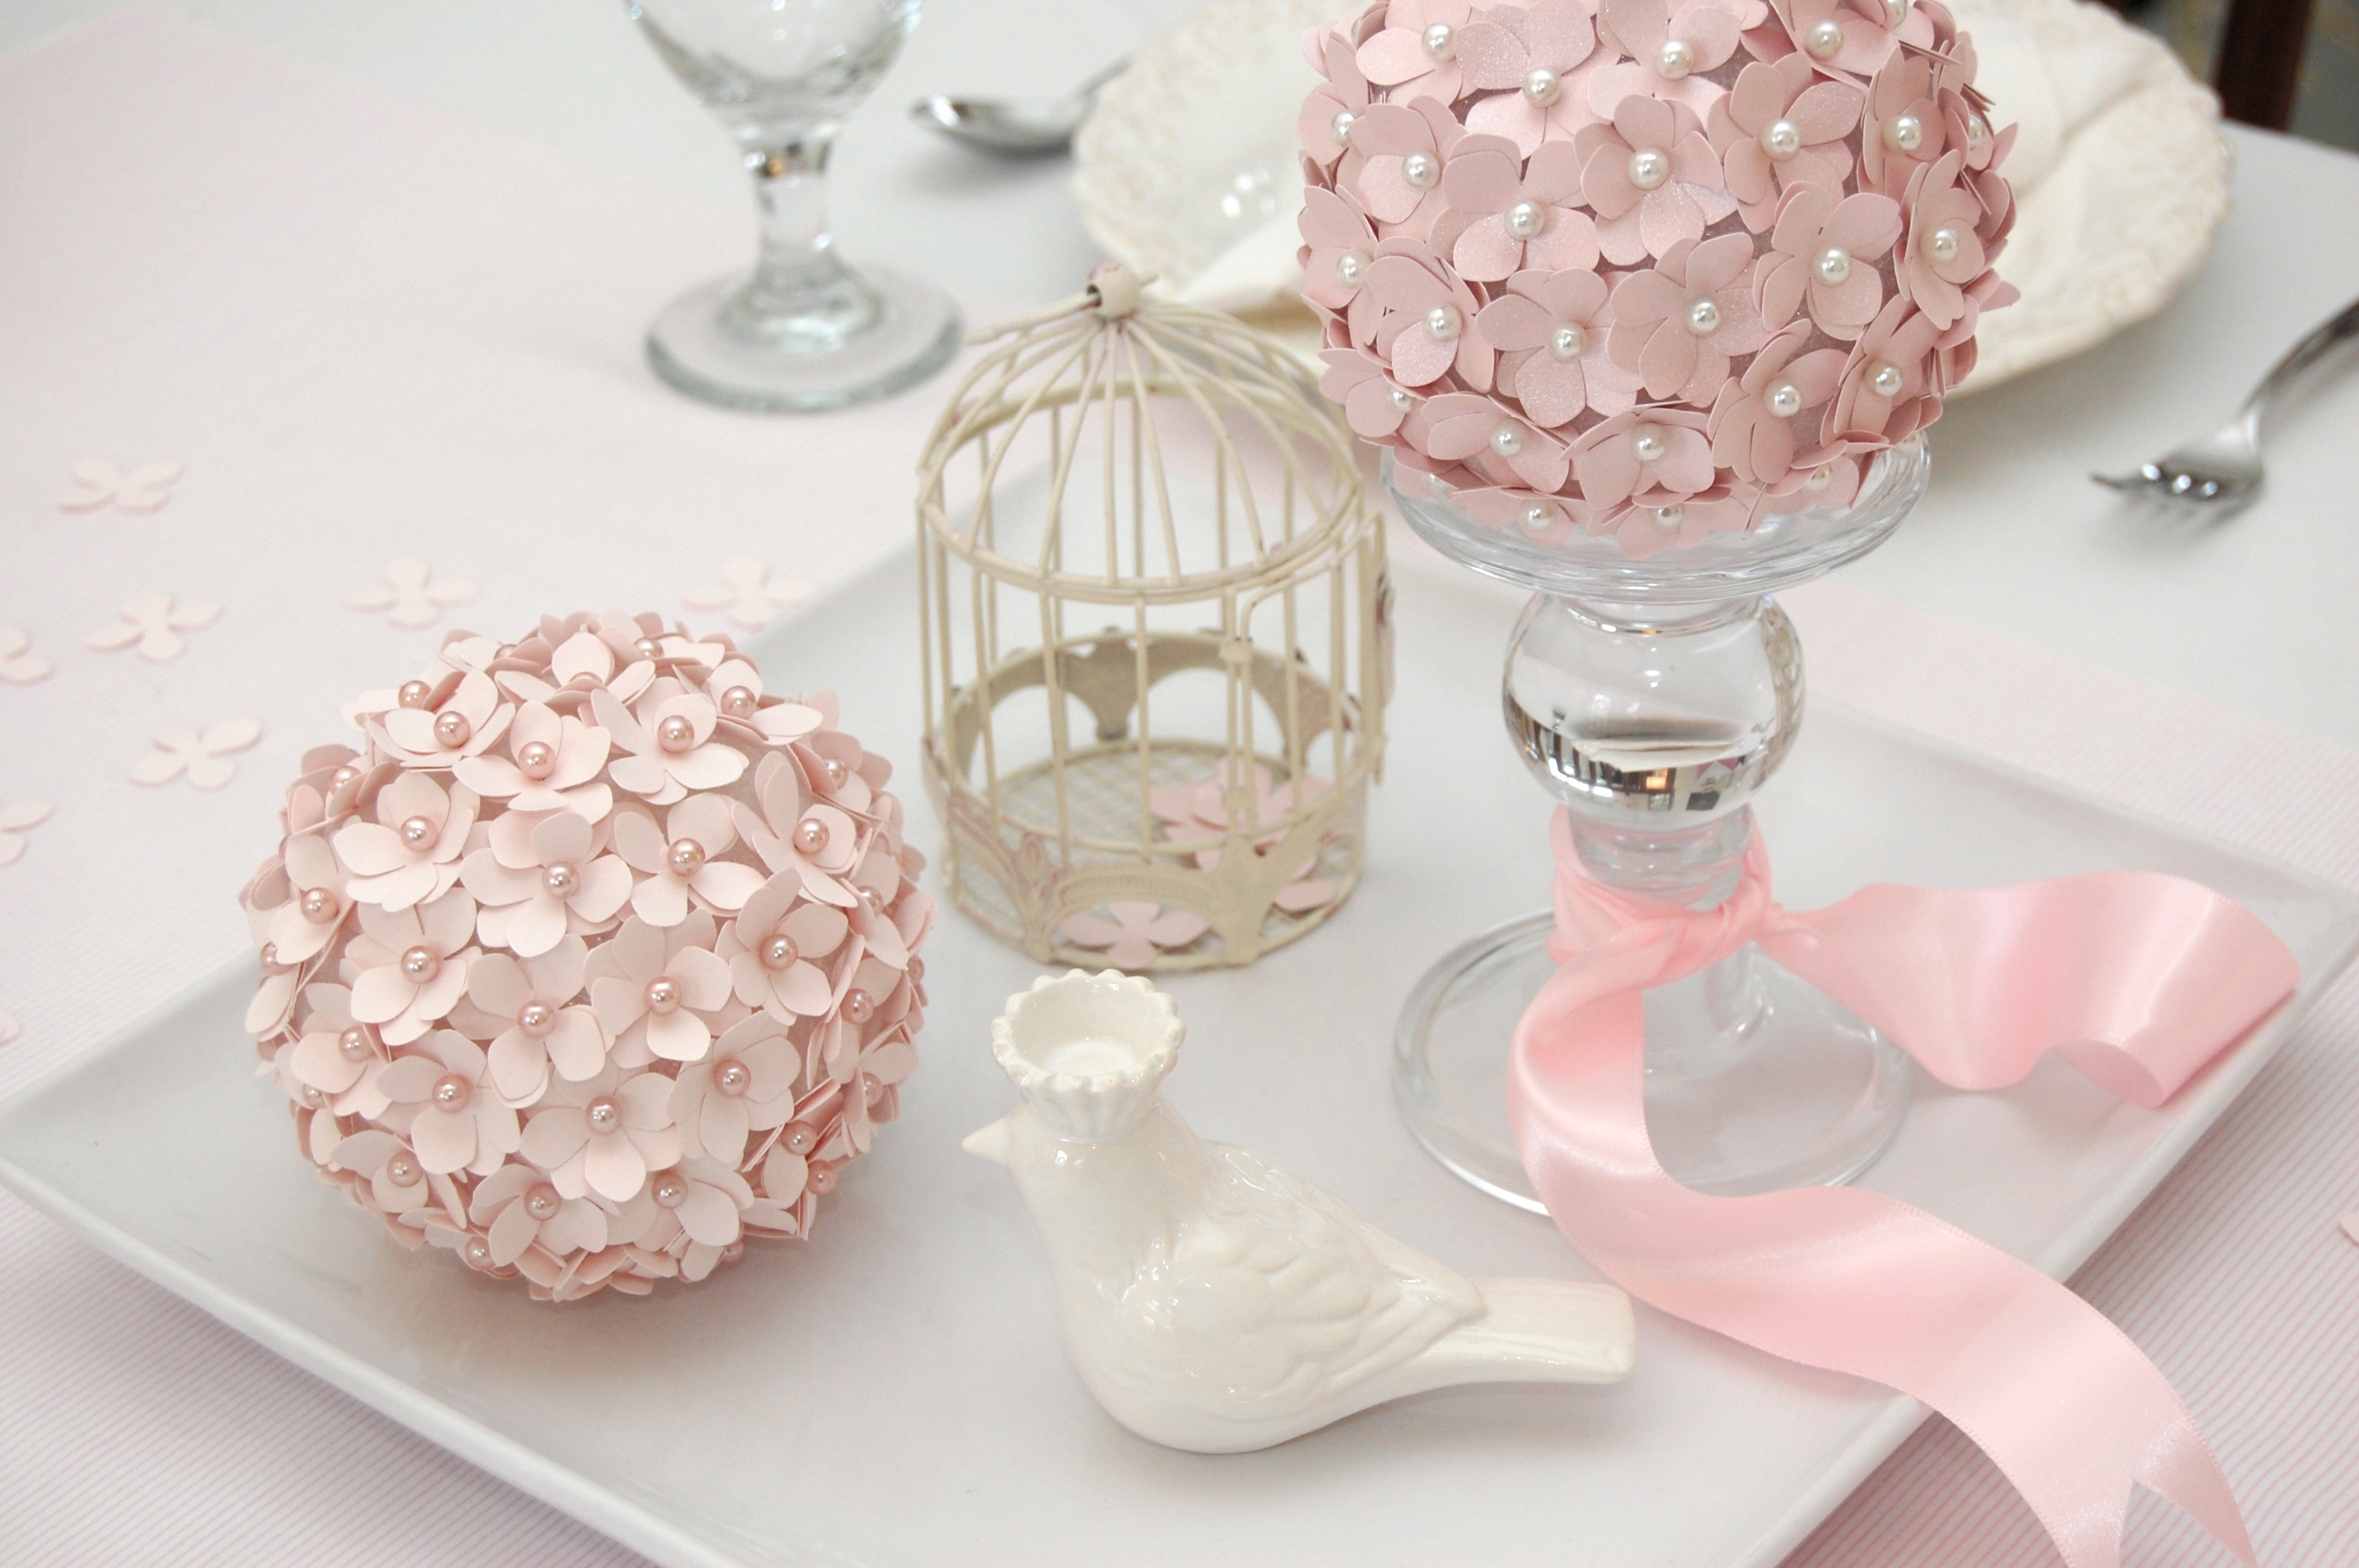 DIY Paper Flower Pomander Centerpiece